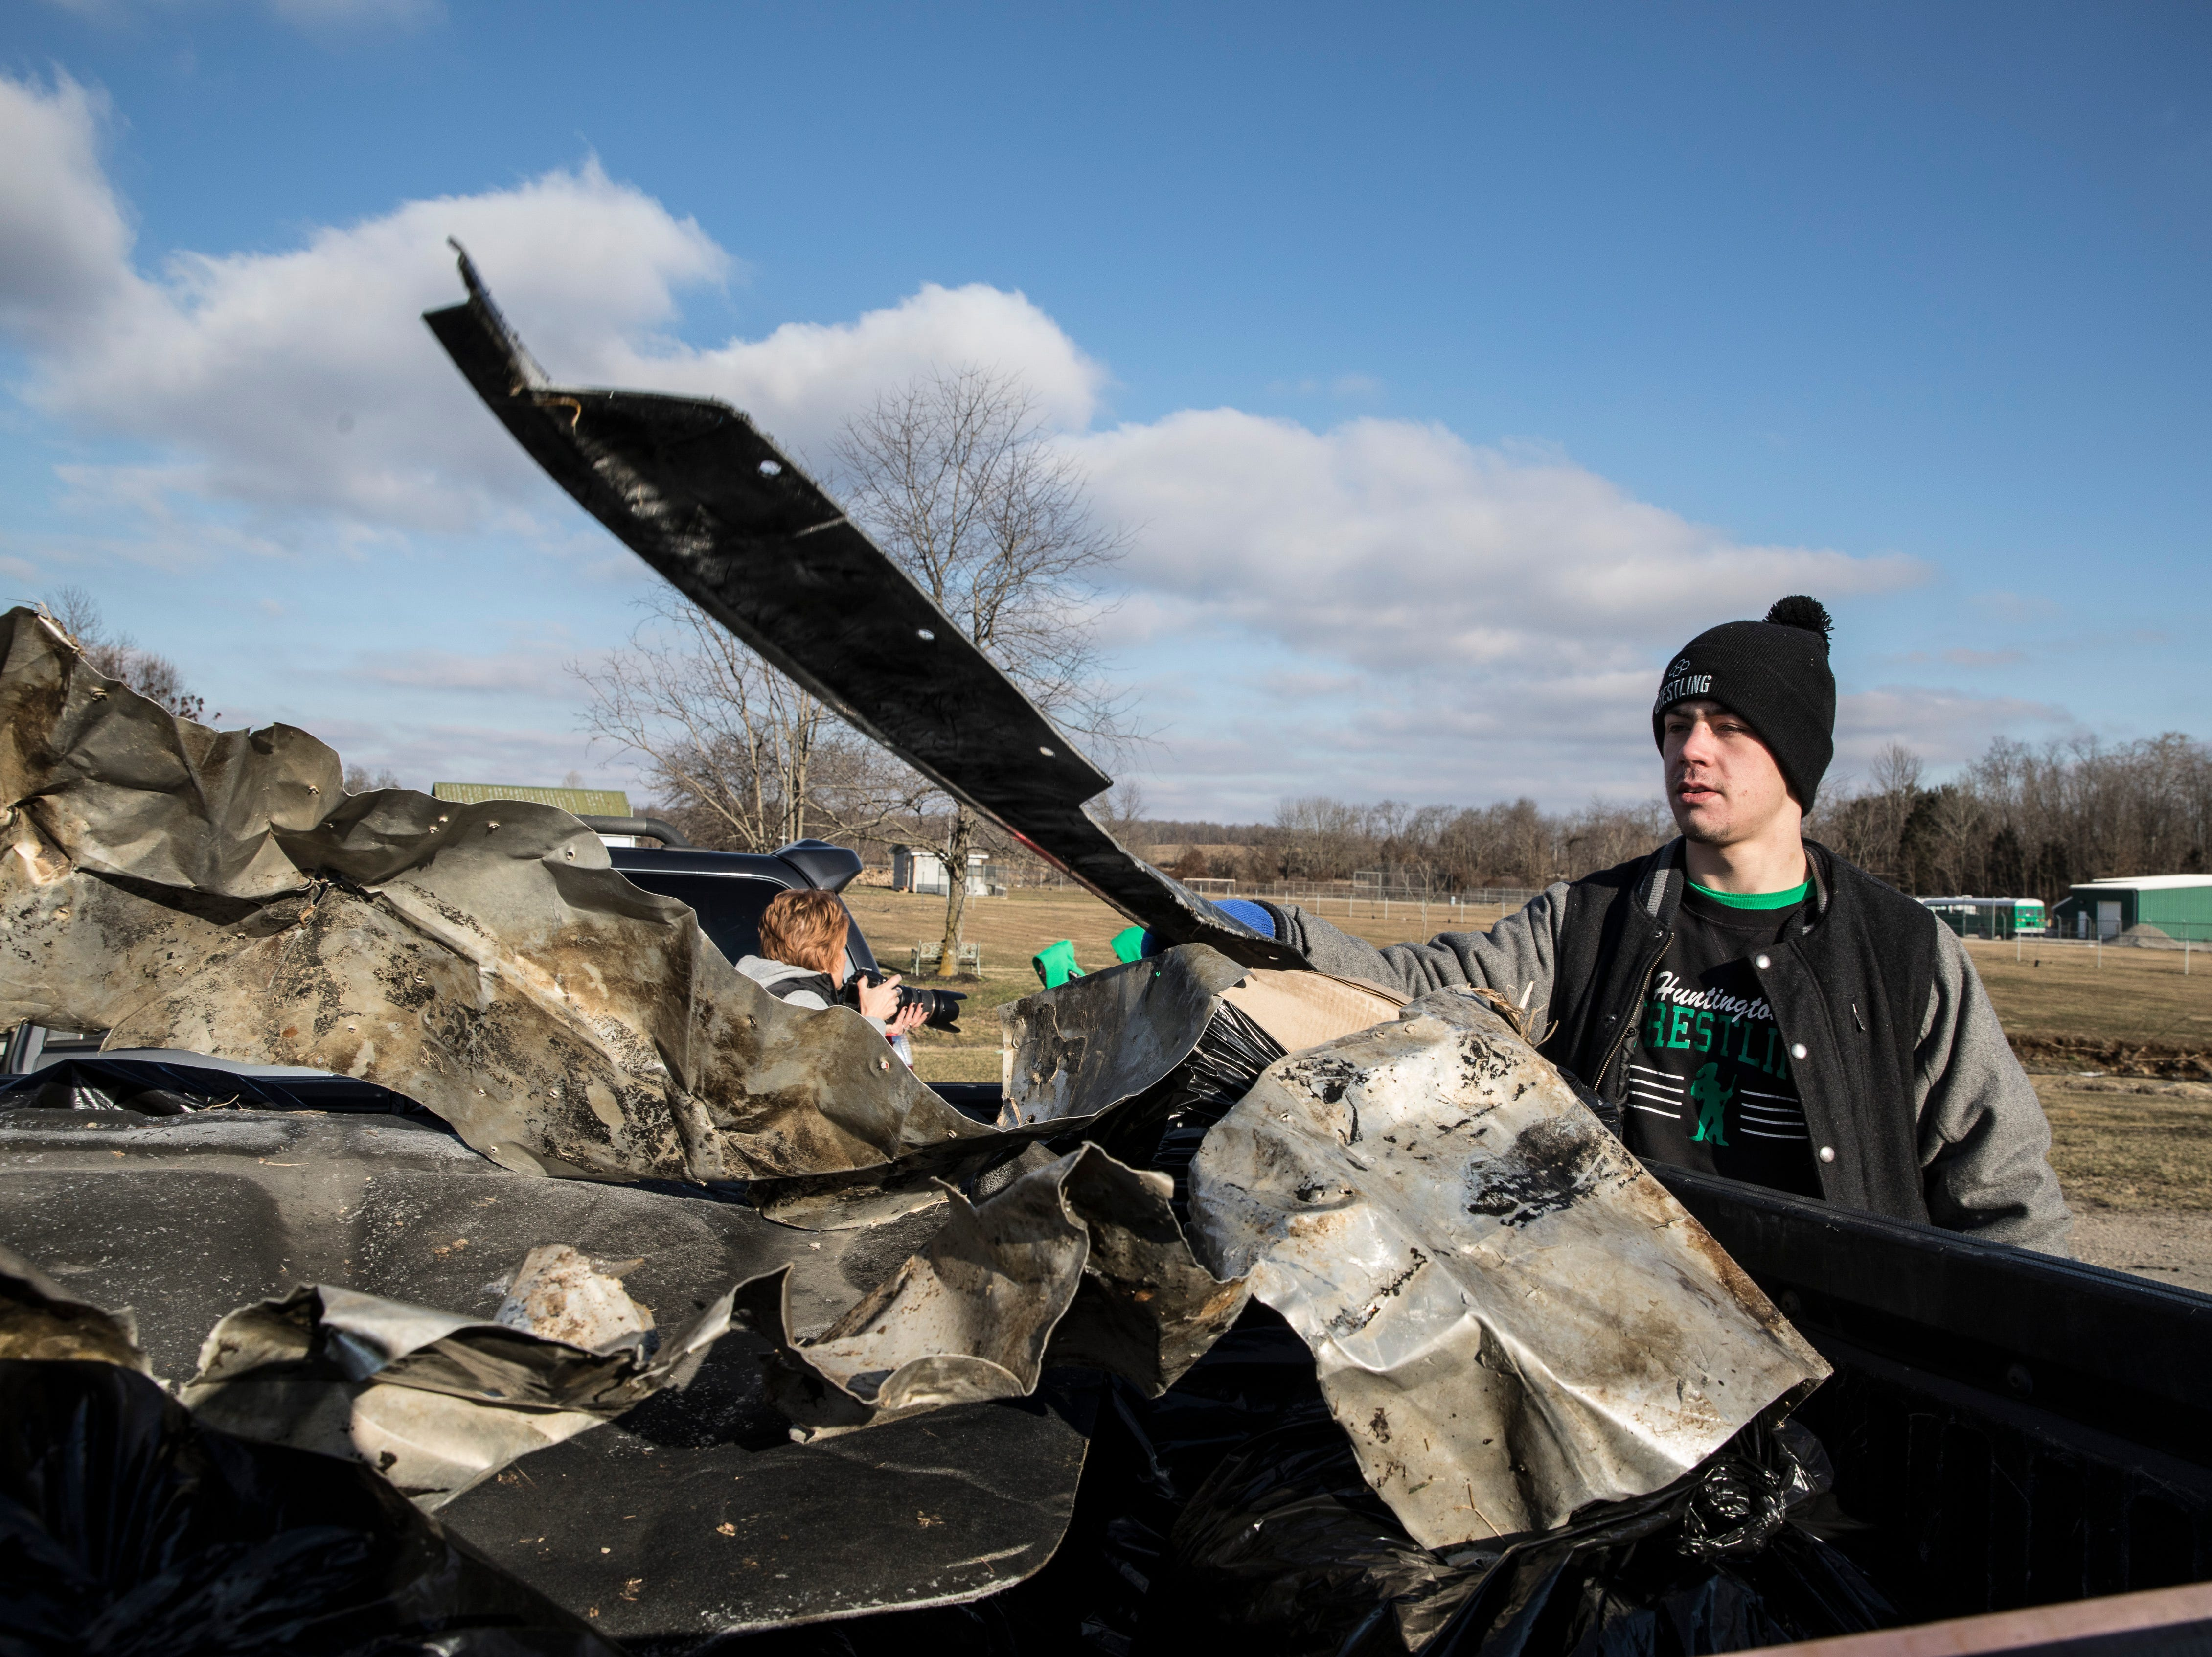 Several members of the Huntington wrestling team spent their Saturday morning volunteering to clean trash and debris from the side of OH 772 near Huntington High School and some of its surrounding roads.